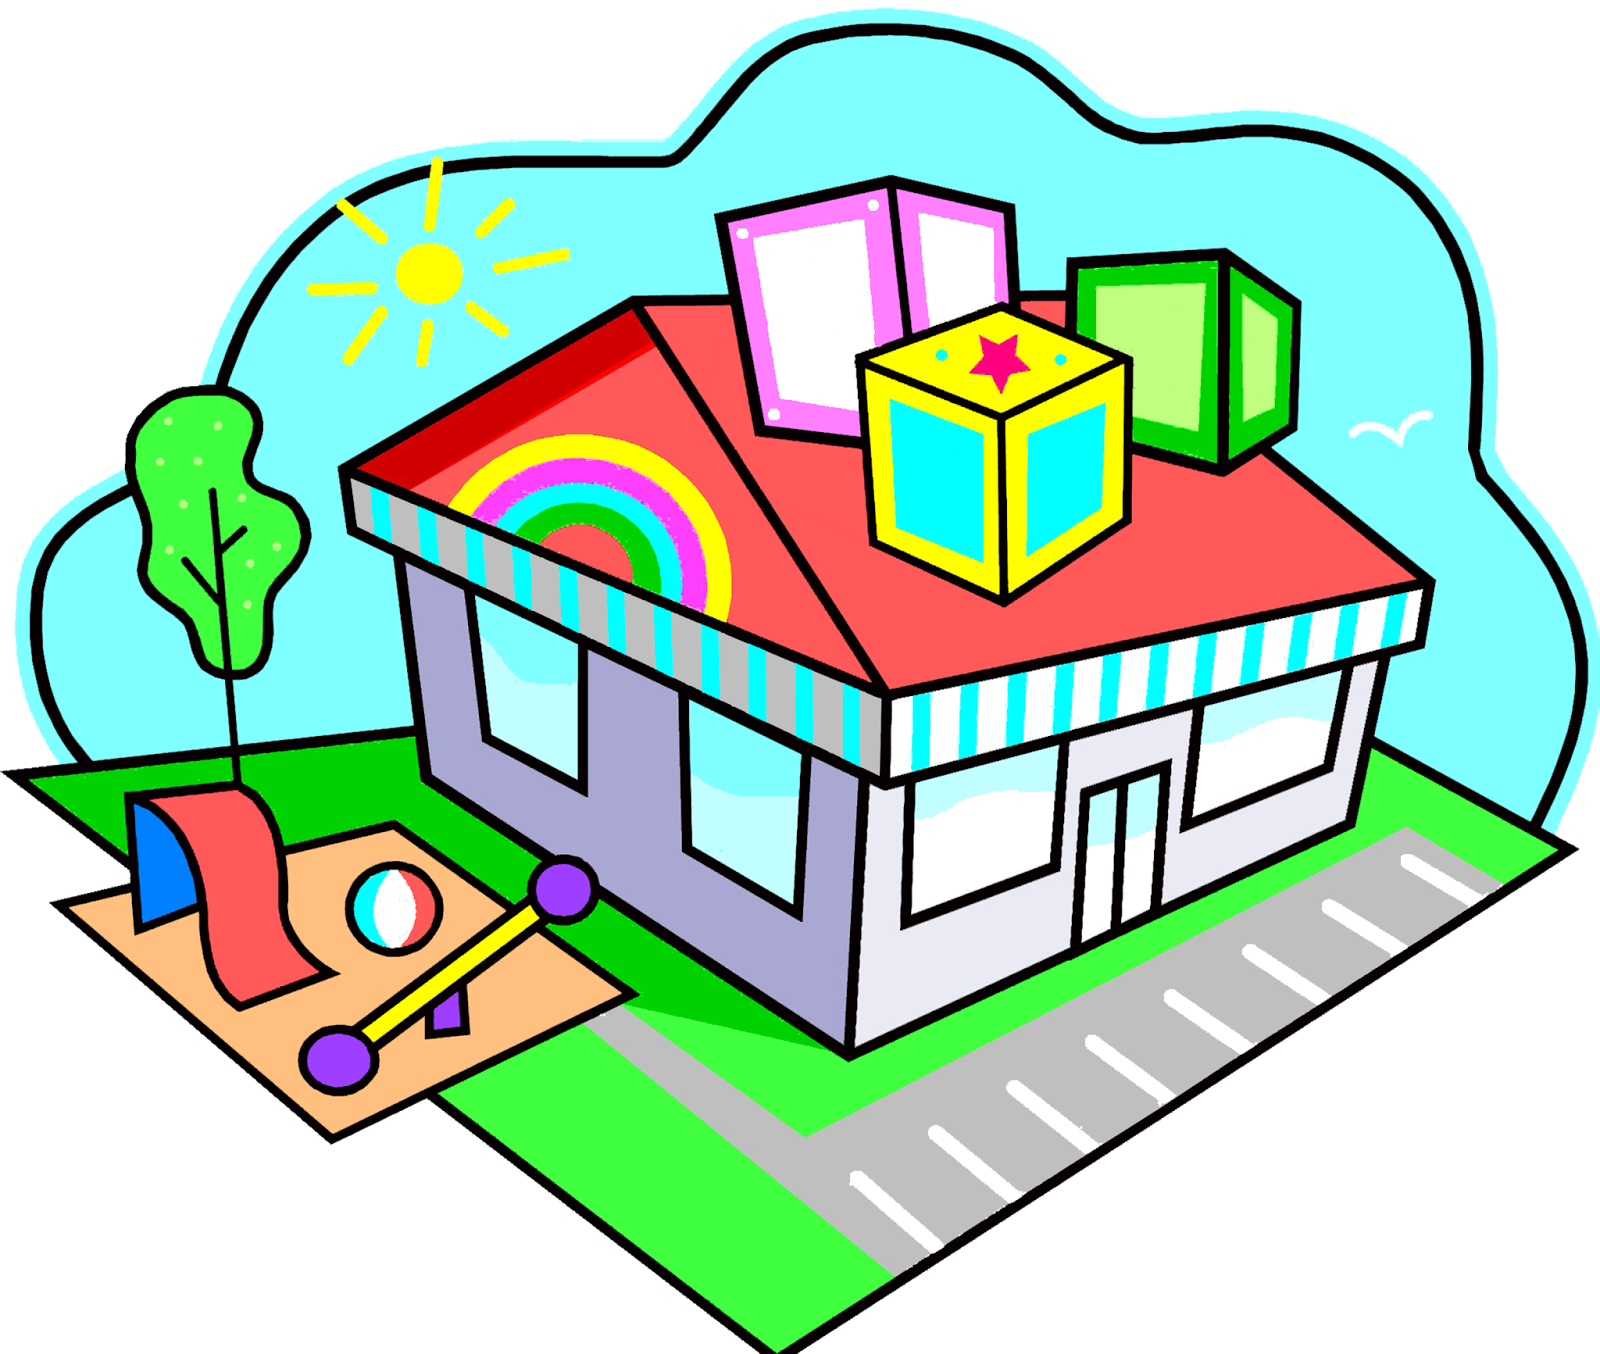 Preschool house clipart vector Child care Adult daycare center Clip art - child 1600*1354 ... vector